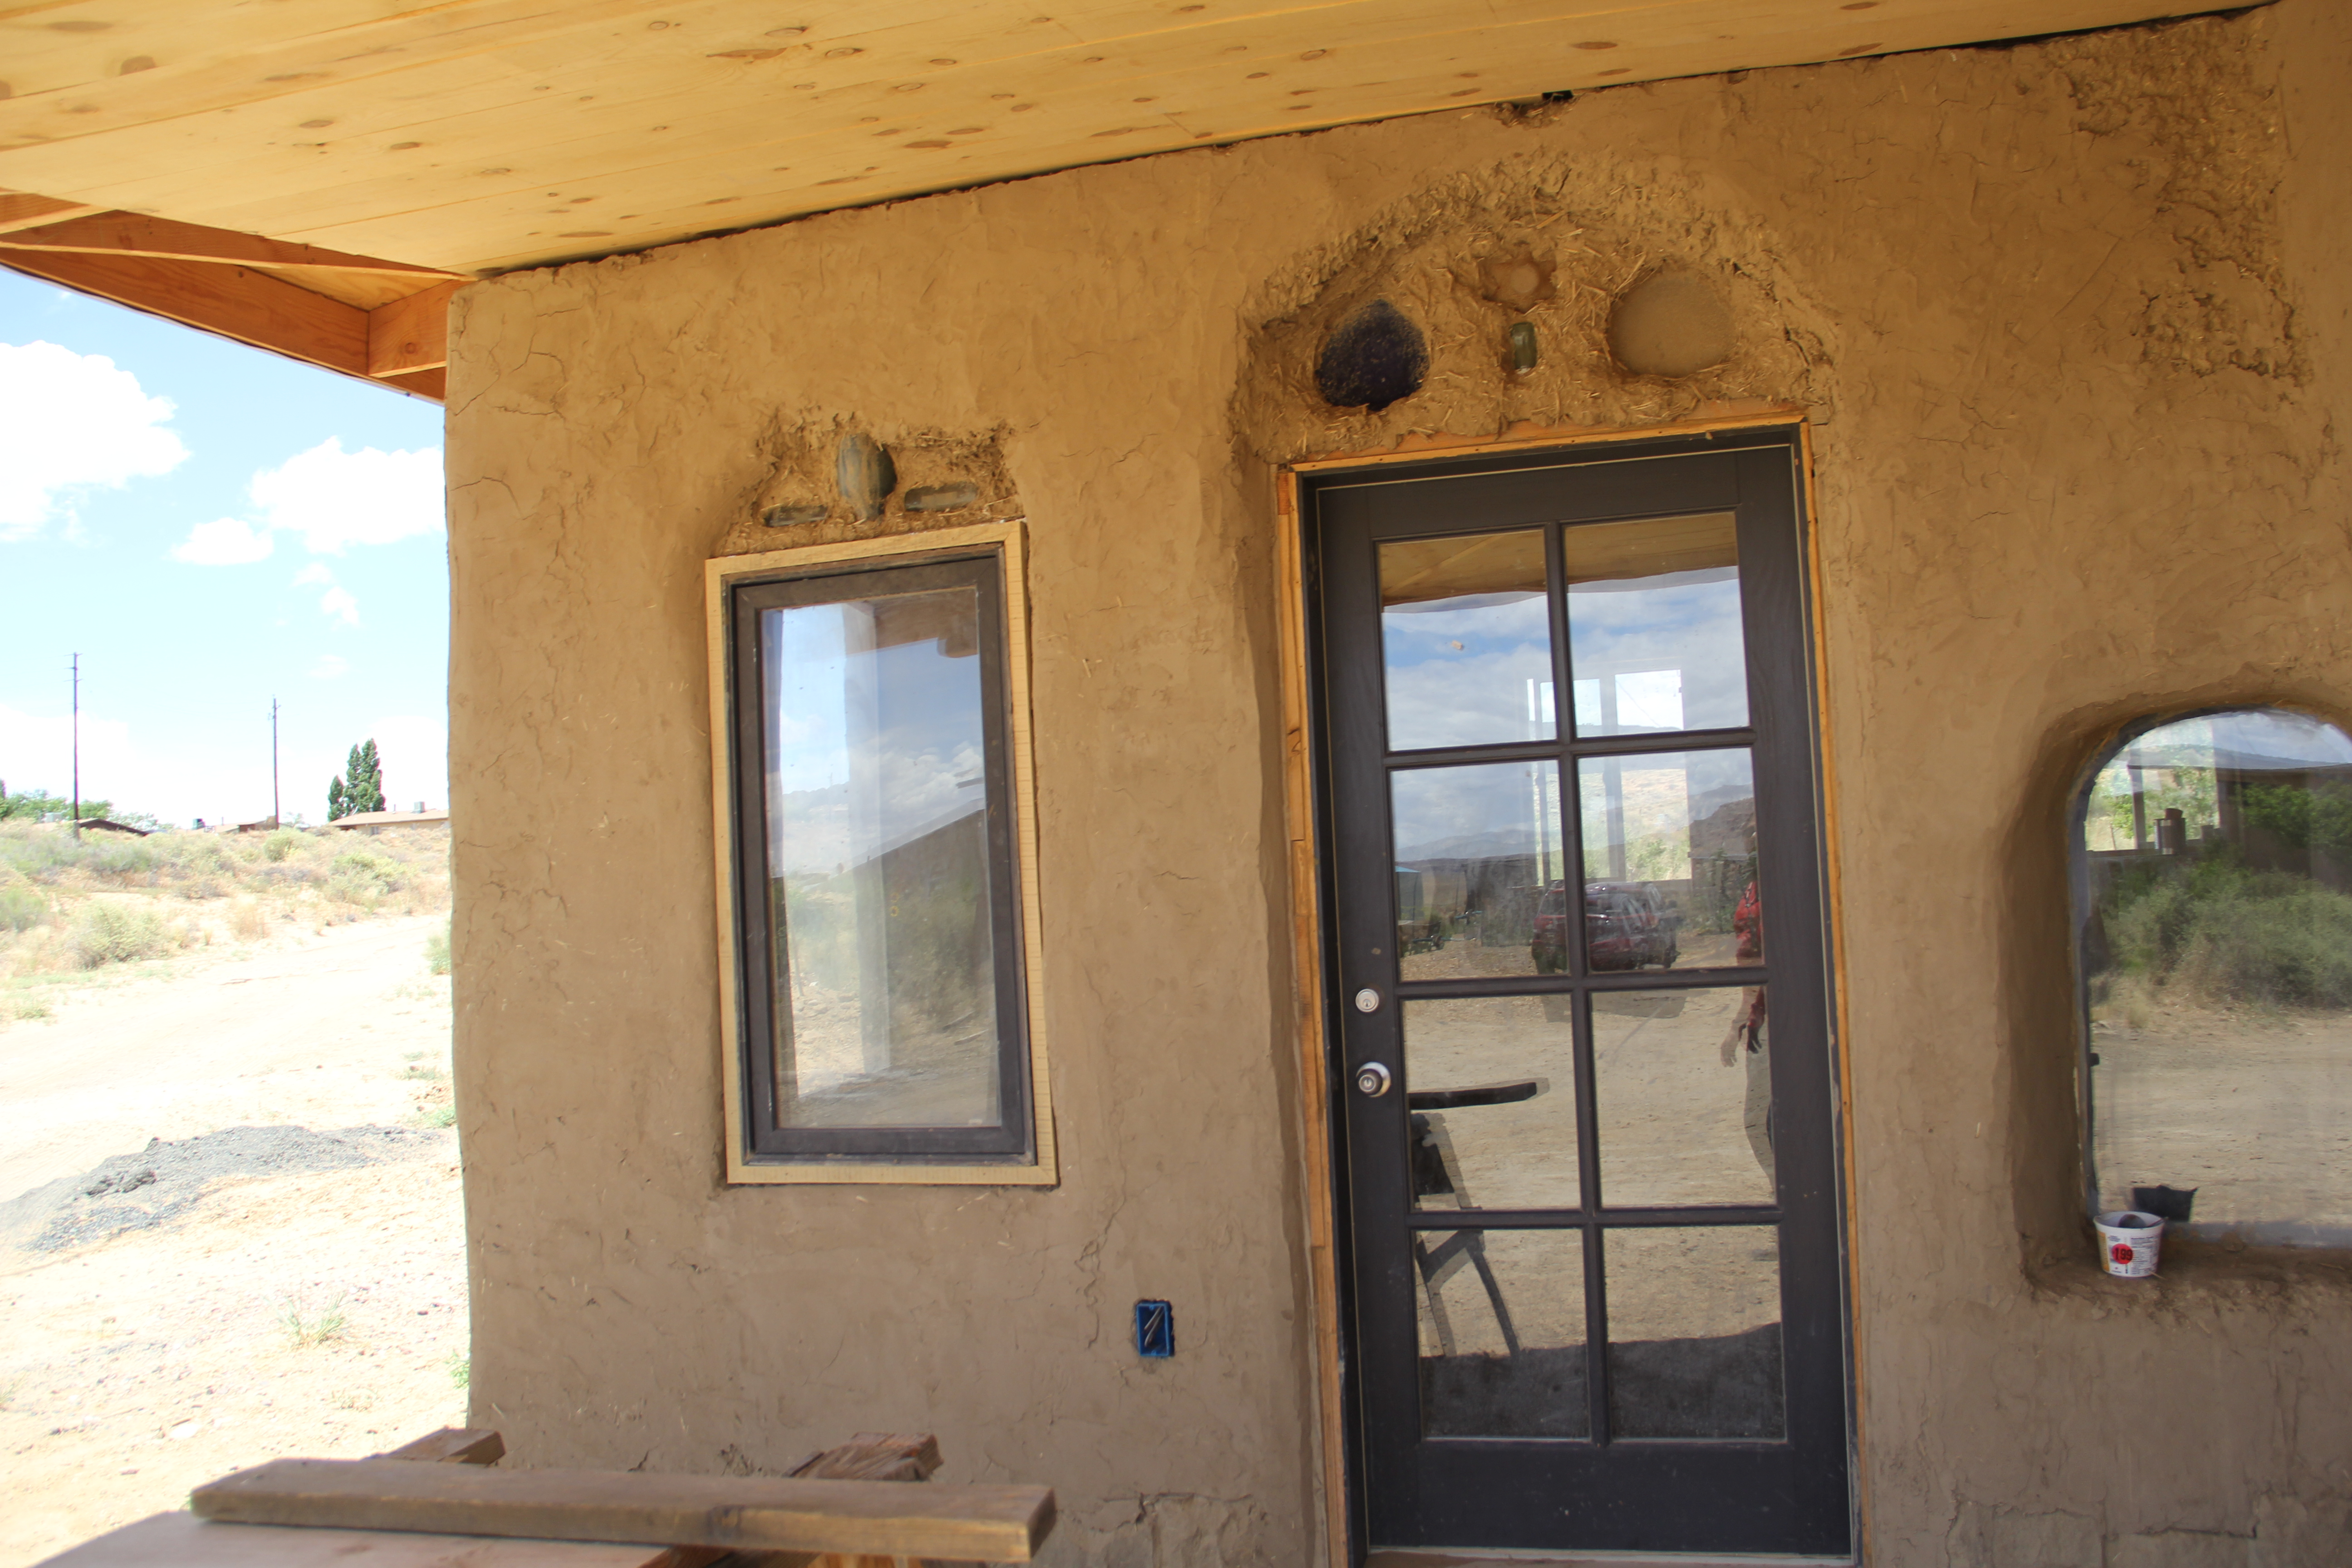 kykotsmovi village dating Daryl pahona is 64 years old and was born on 11/11/1953 currently, he lives in kykotsmovi village, az sometimes daryl goes by various nicknames including daryl j dahona, daryl j pahona.